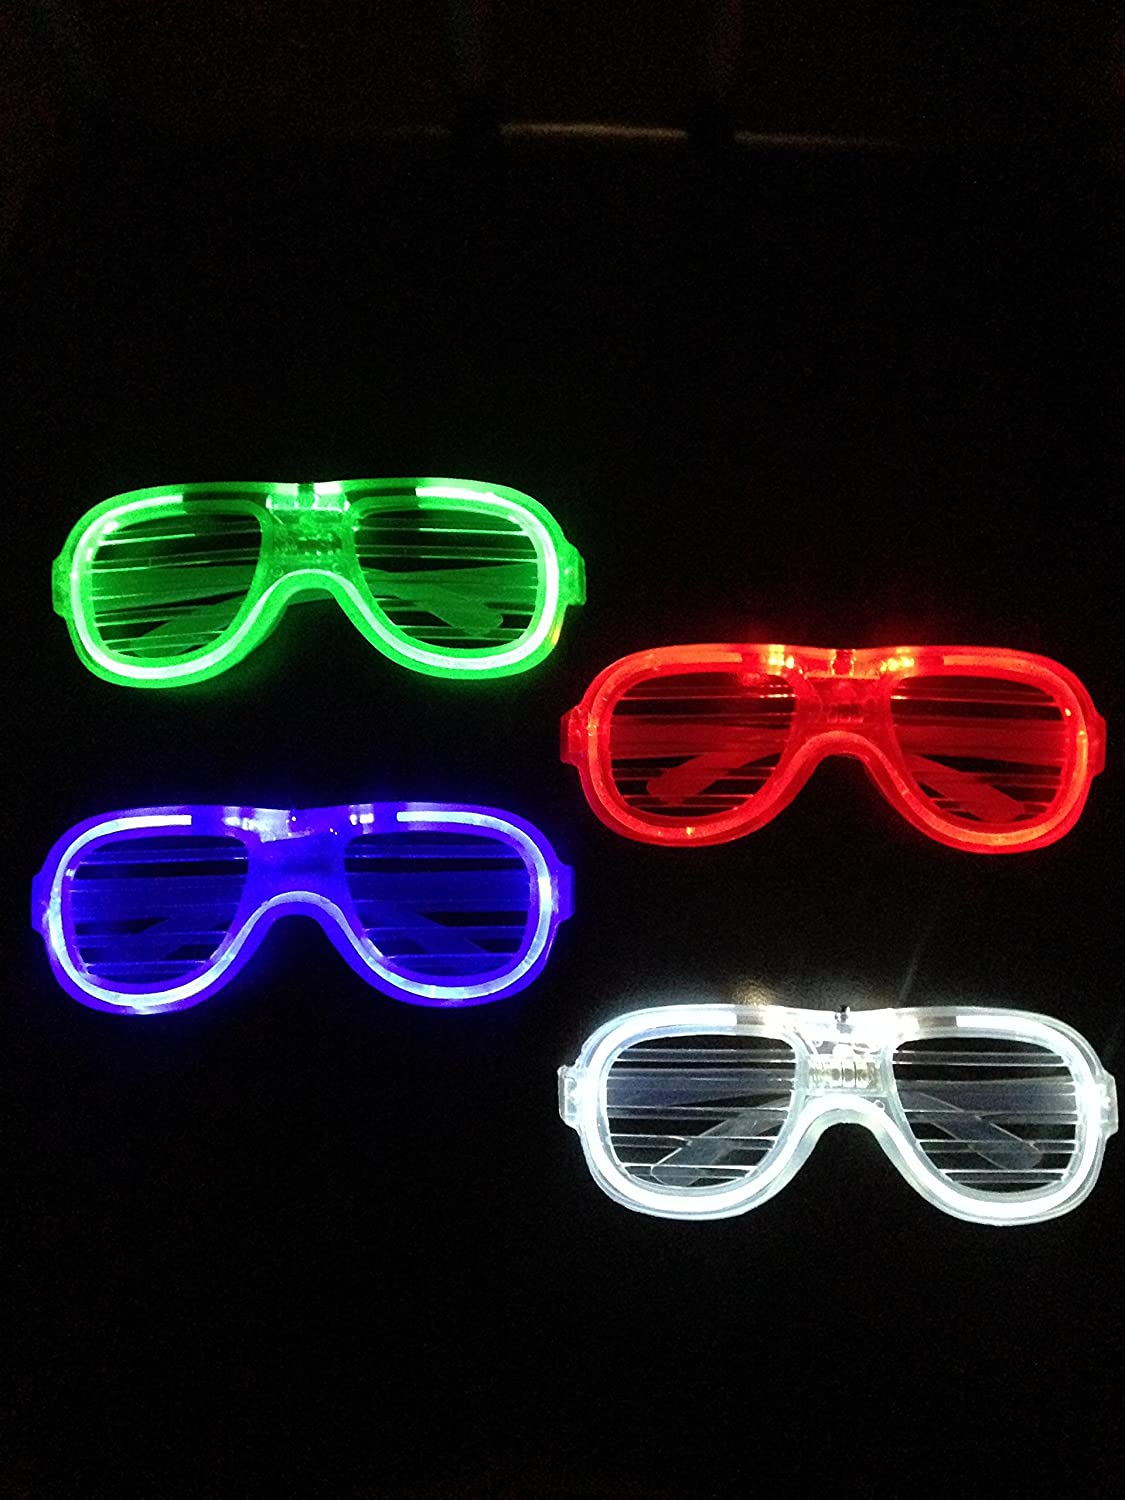 (2 Pack) Rockstar LED Flashing & Light-Up Shades - Funny Amazing Cool Glasses Multicolor Eyewear Props for Clubs Parties & Festivals - [Multicolor Mixed Pack] WilliamsOnline